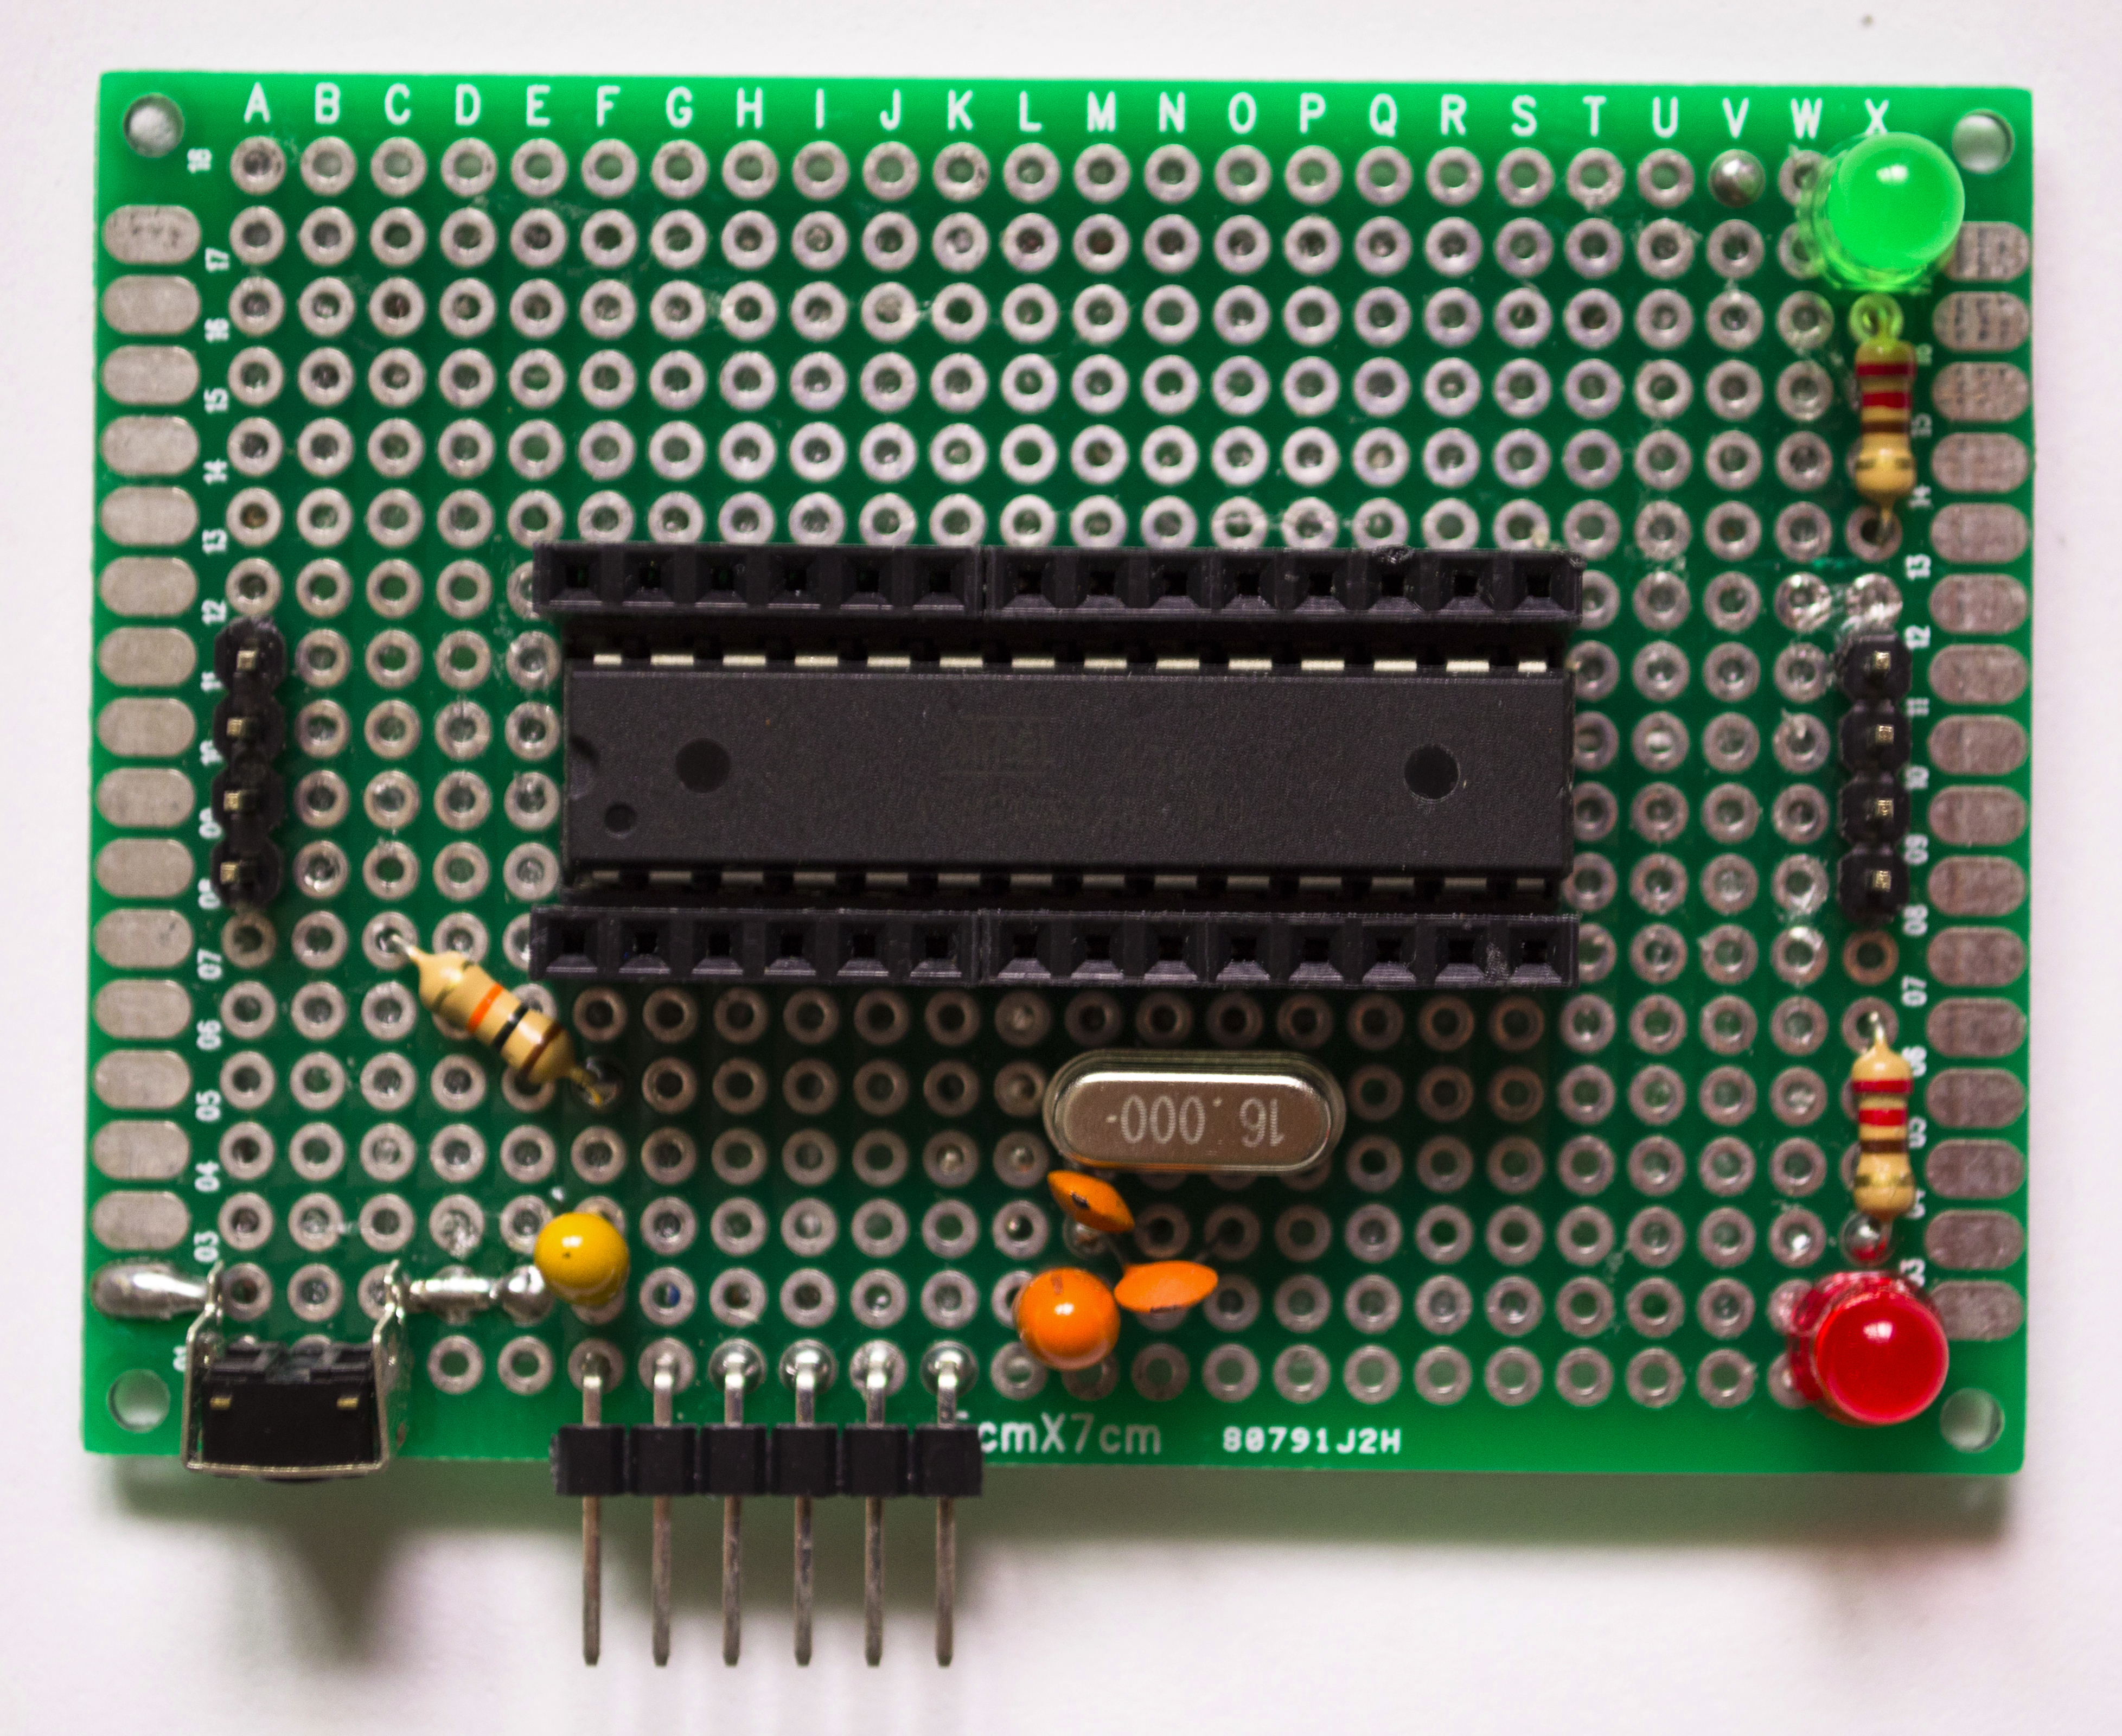 Flashrom and an Arduino at 3 3V - MicroController Electronics